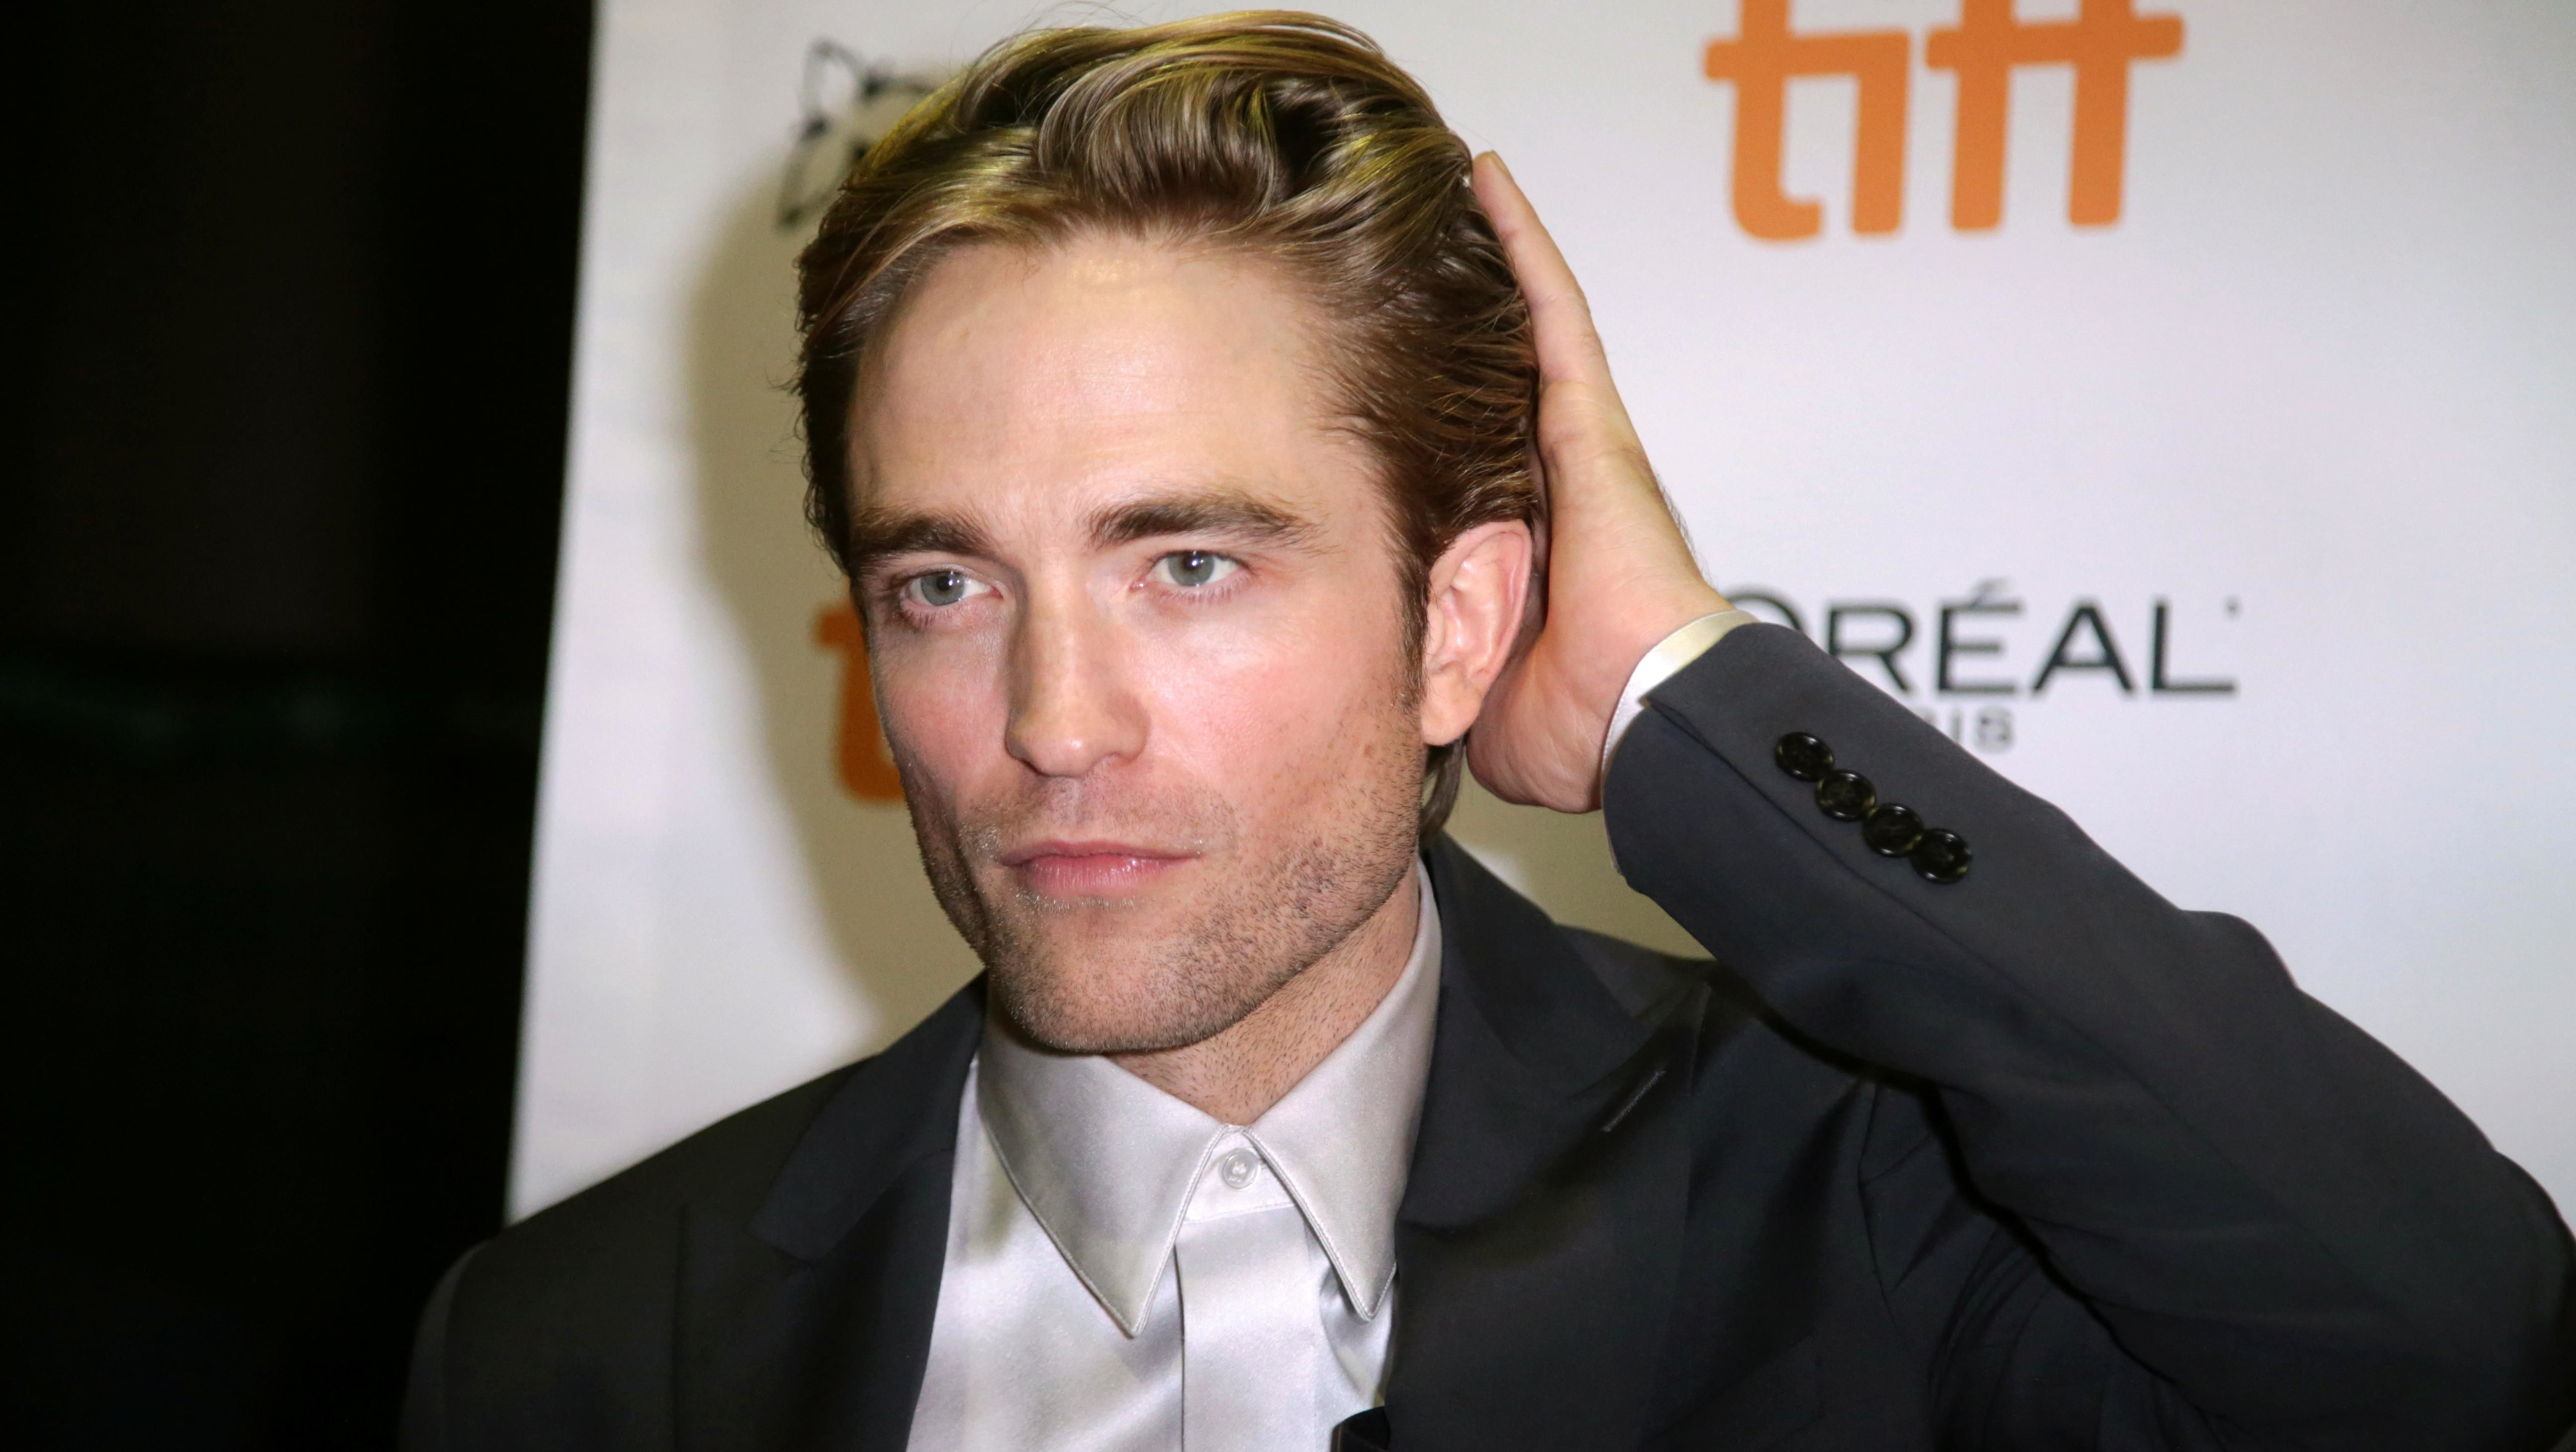 Warner Bros Halts The Batman Production After Robert Pattinson Tests Positive For Covid 19